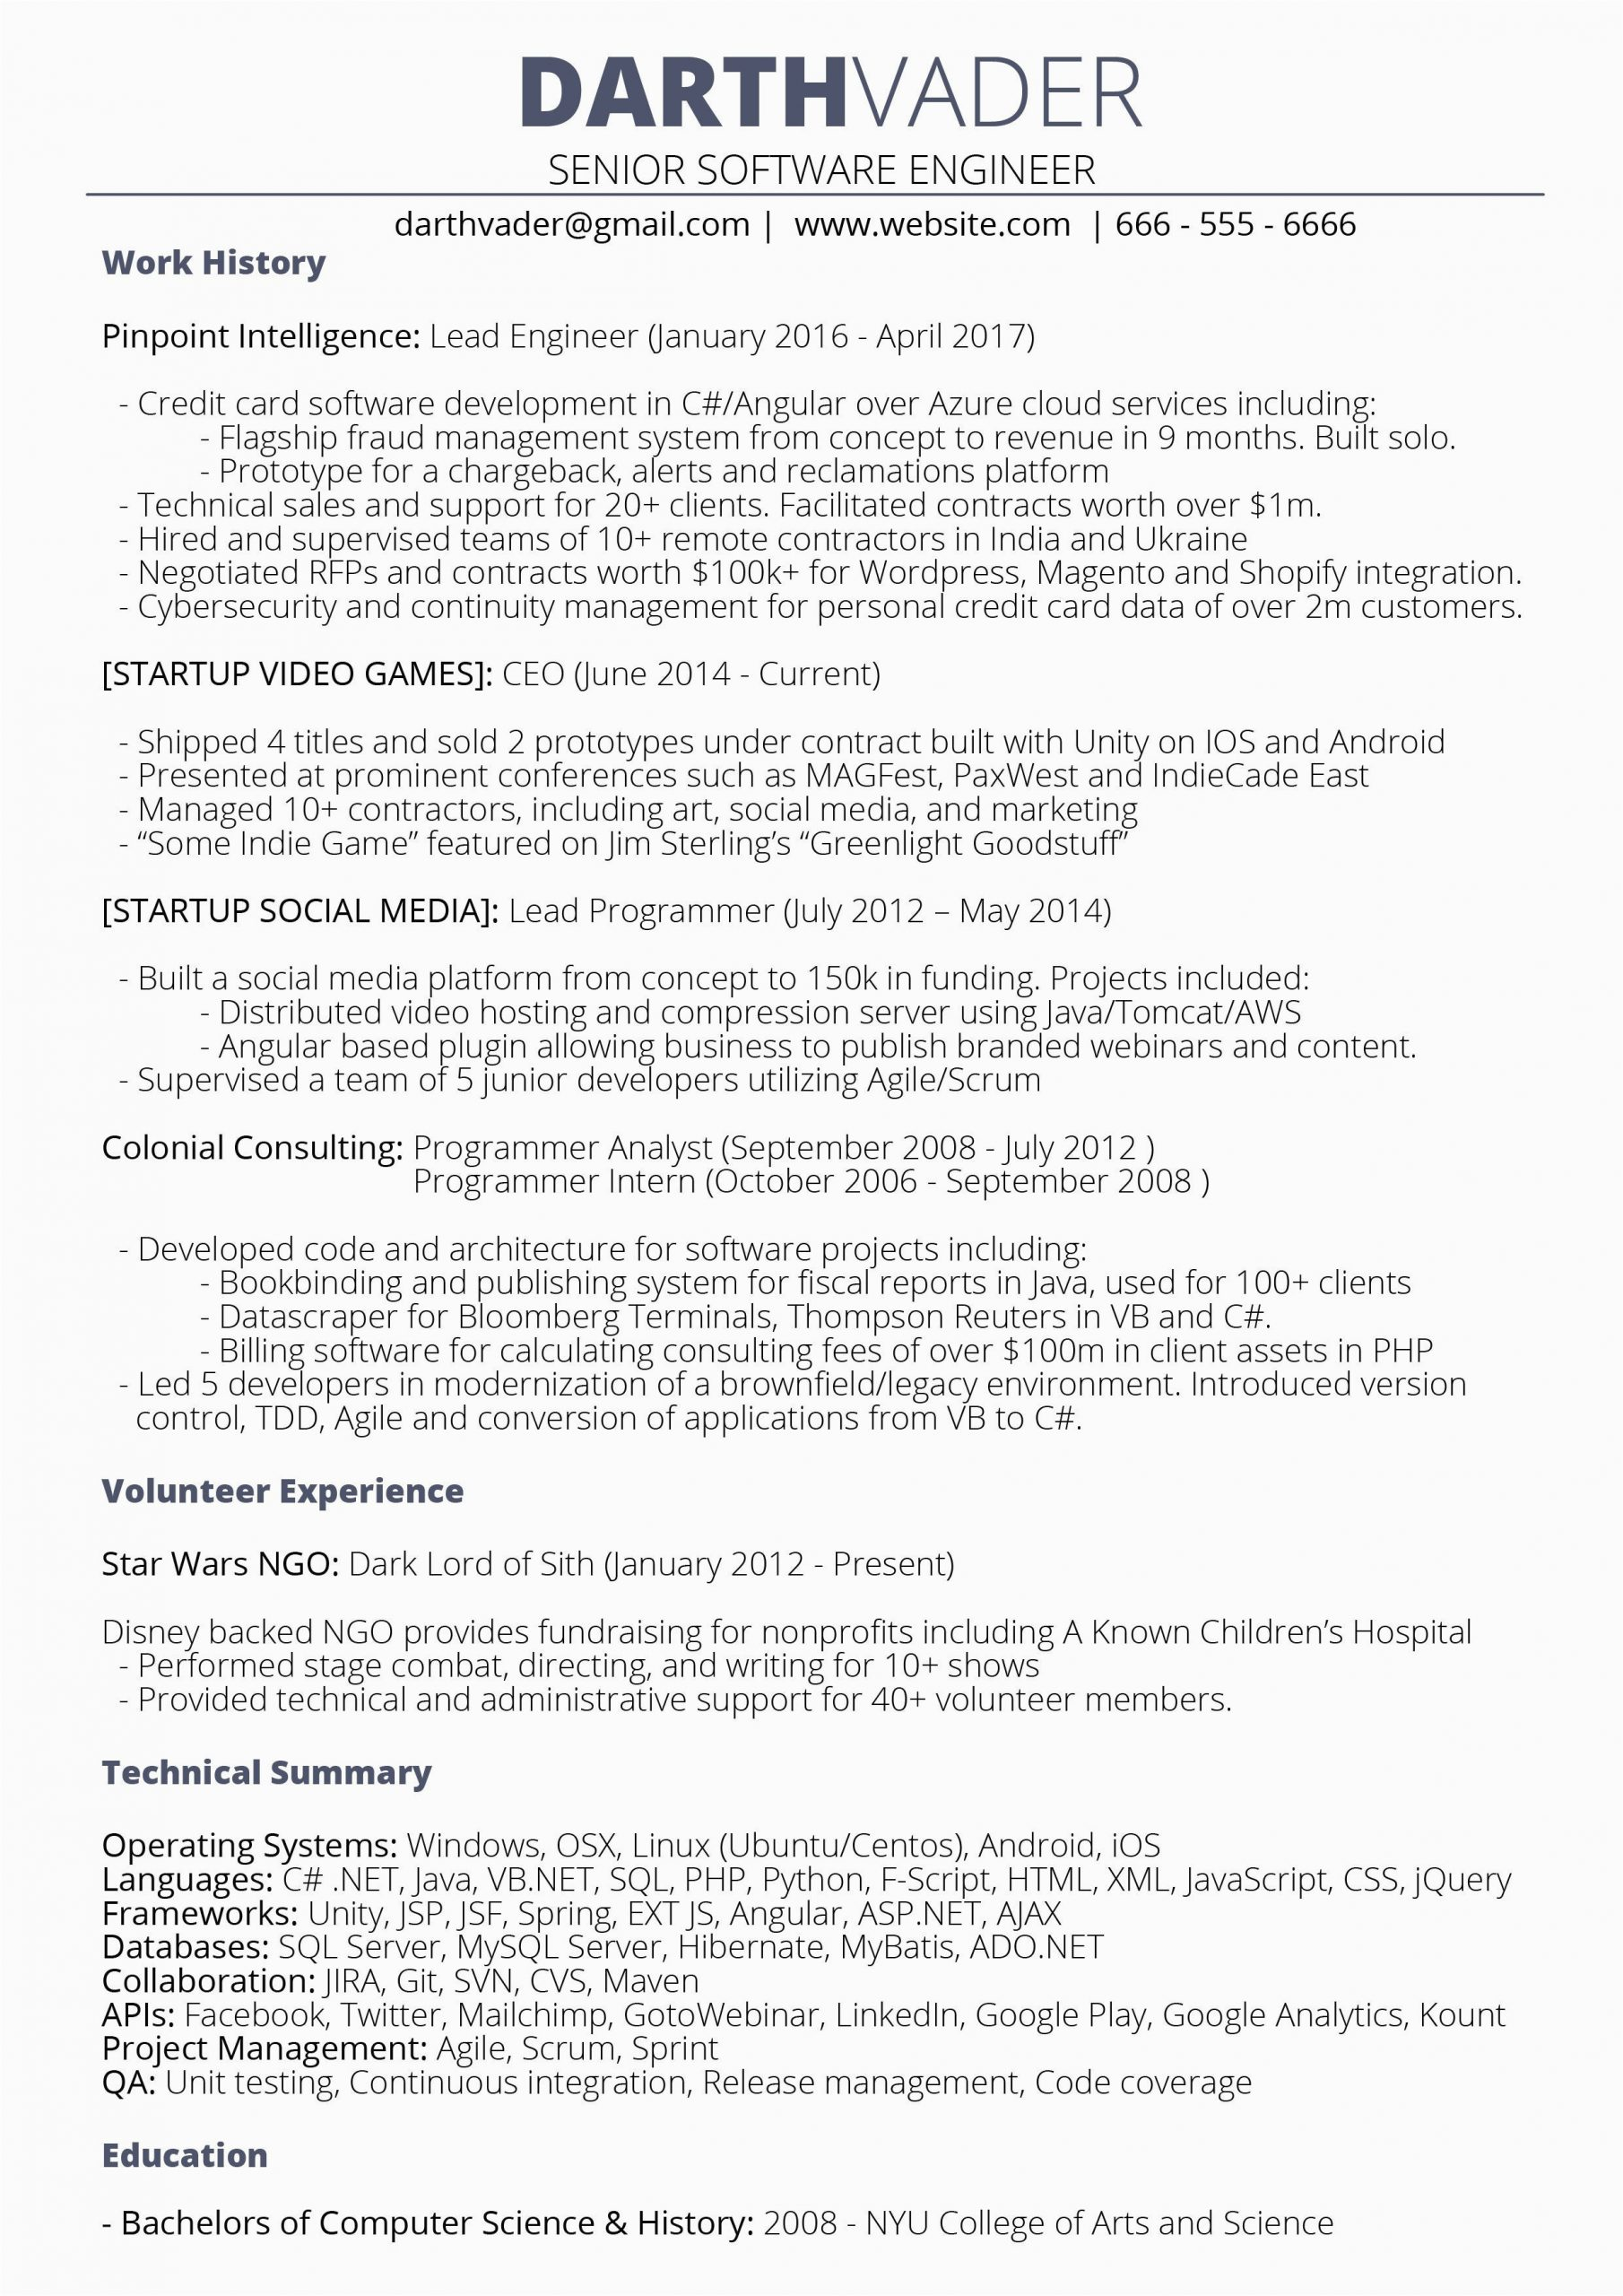 senior software engineer 10 yrs looking for